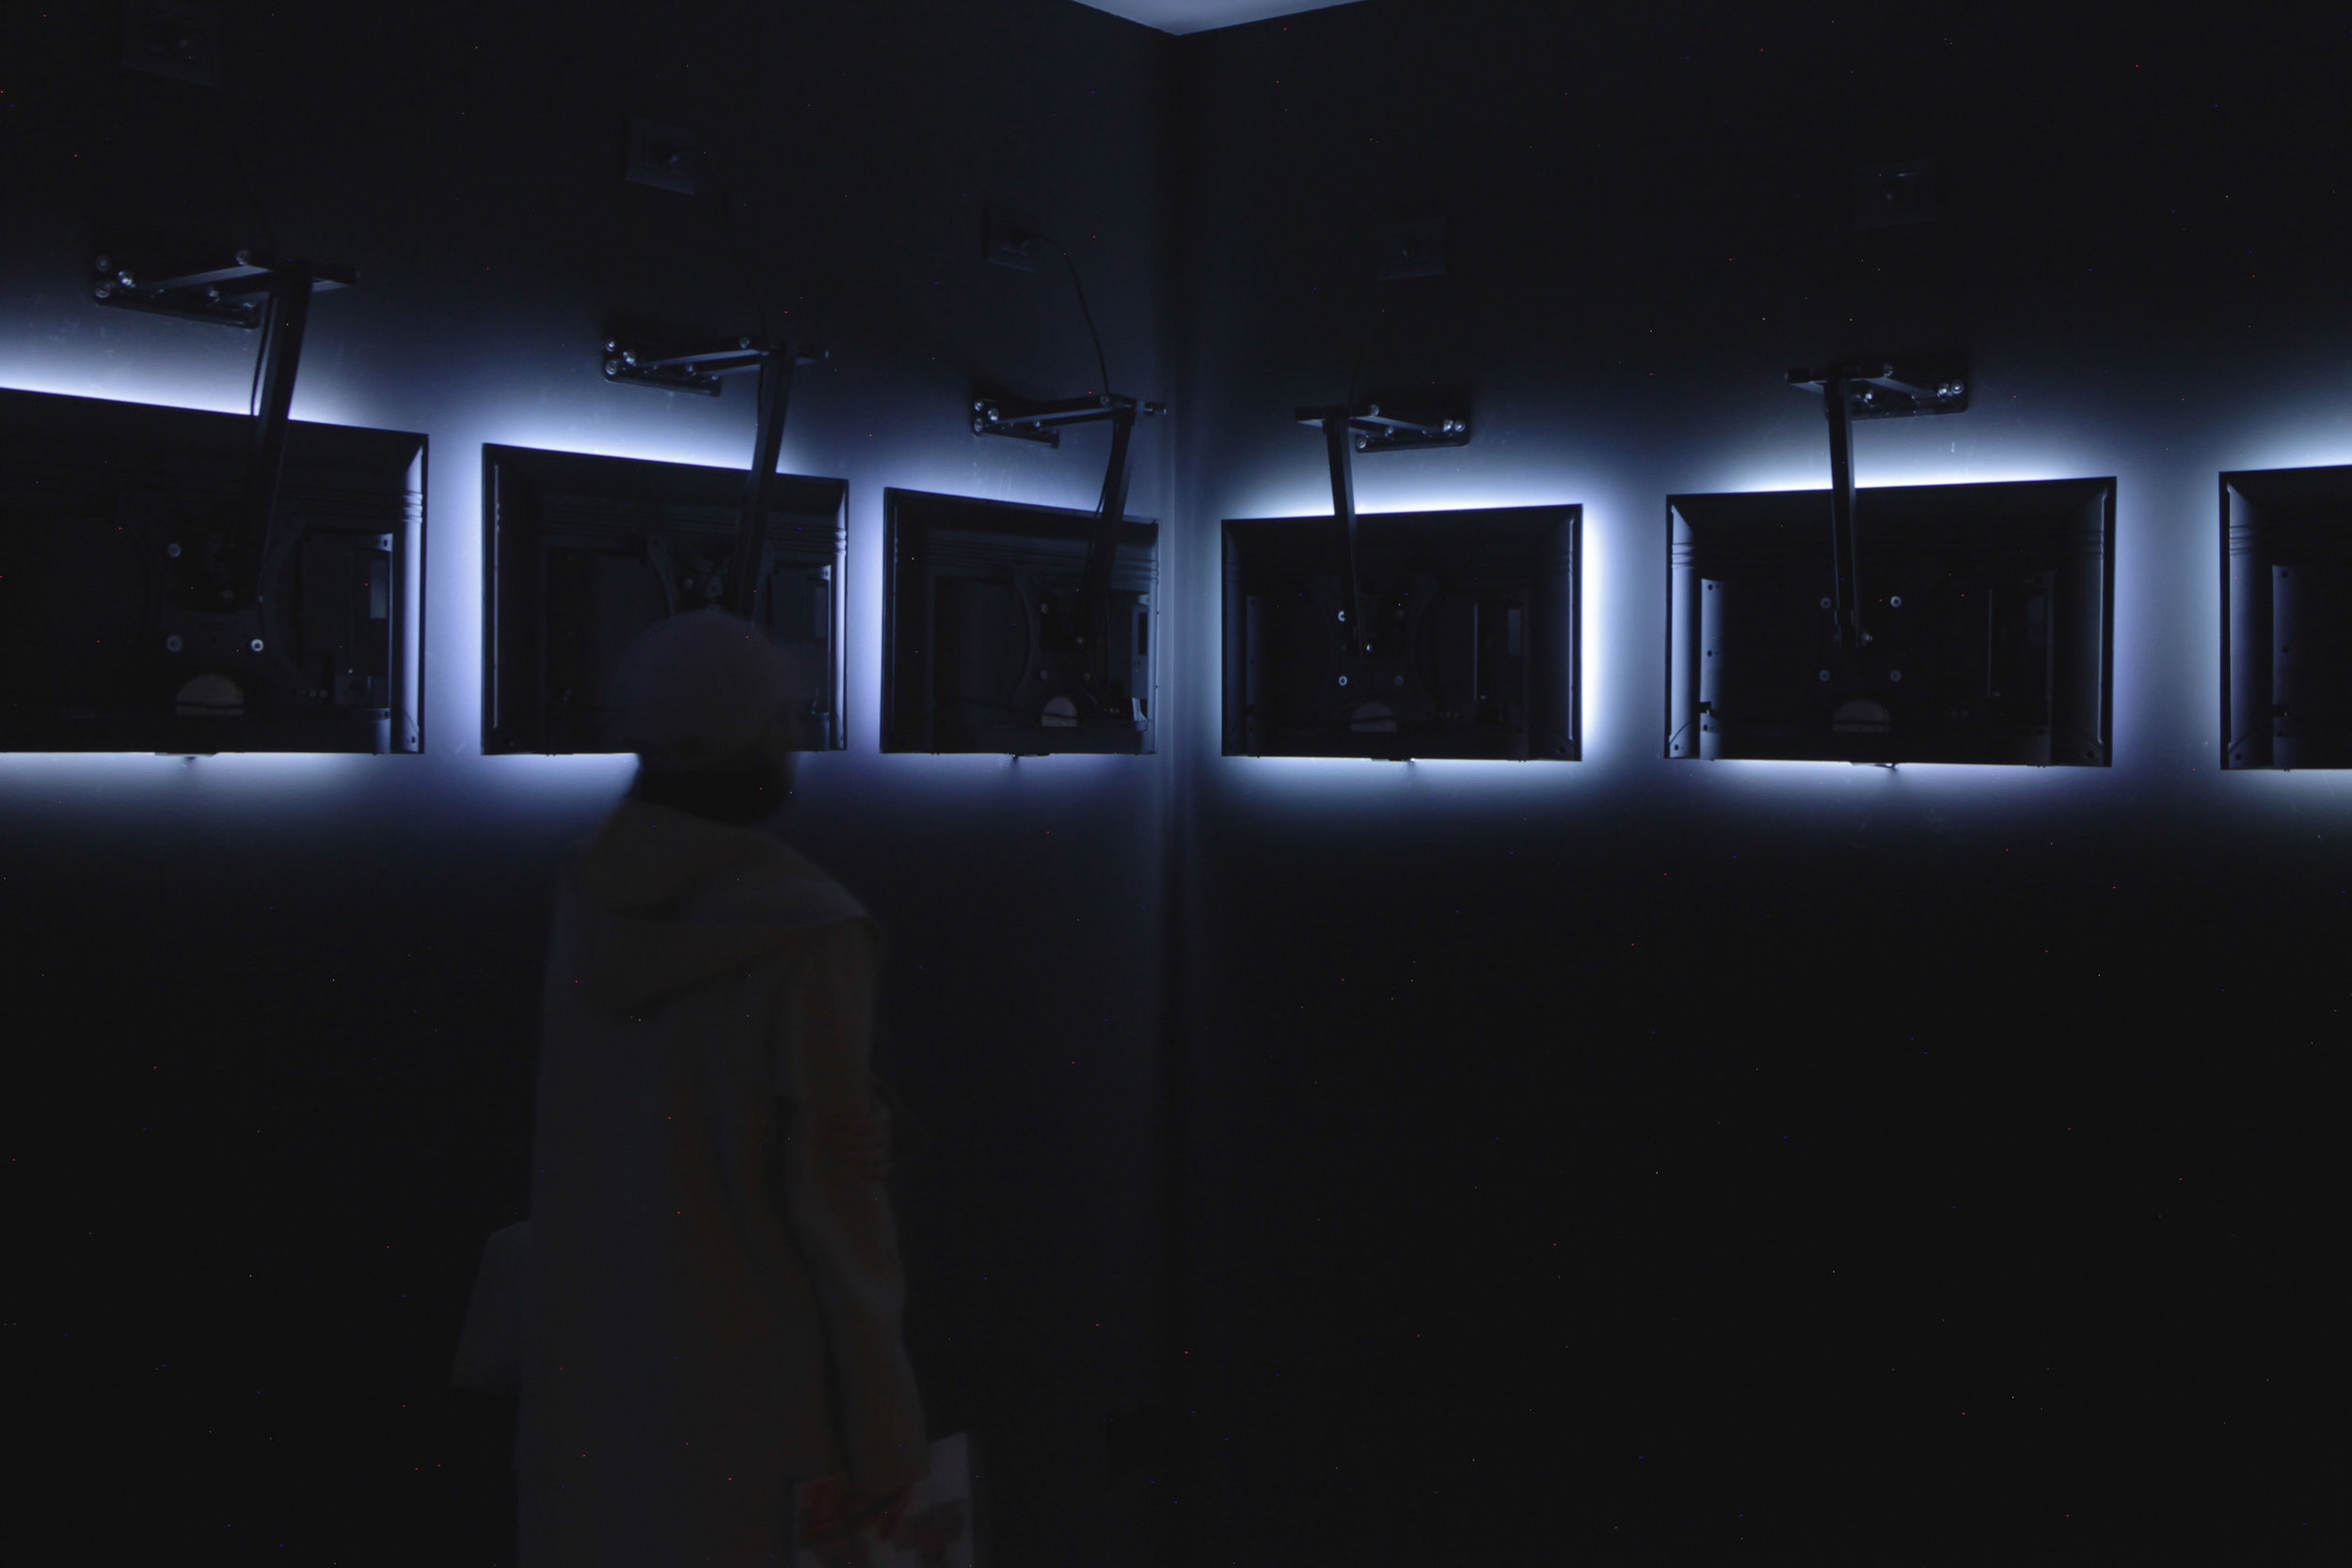 Ivan Lam, 'One Inch', 2019, multimedia installation, dimensions variable. Image courtesy of the artist.